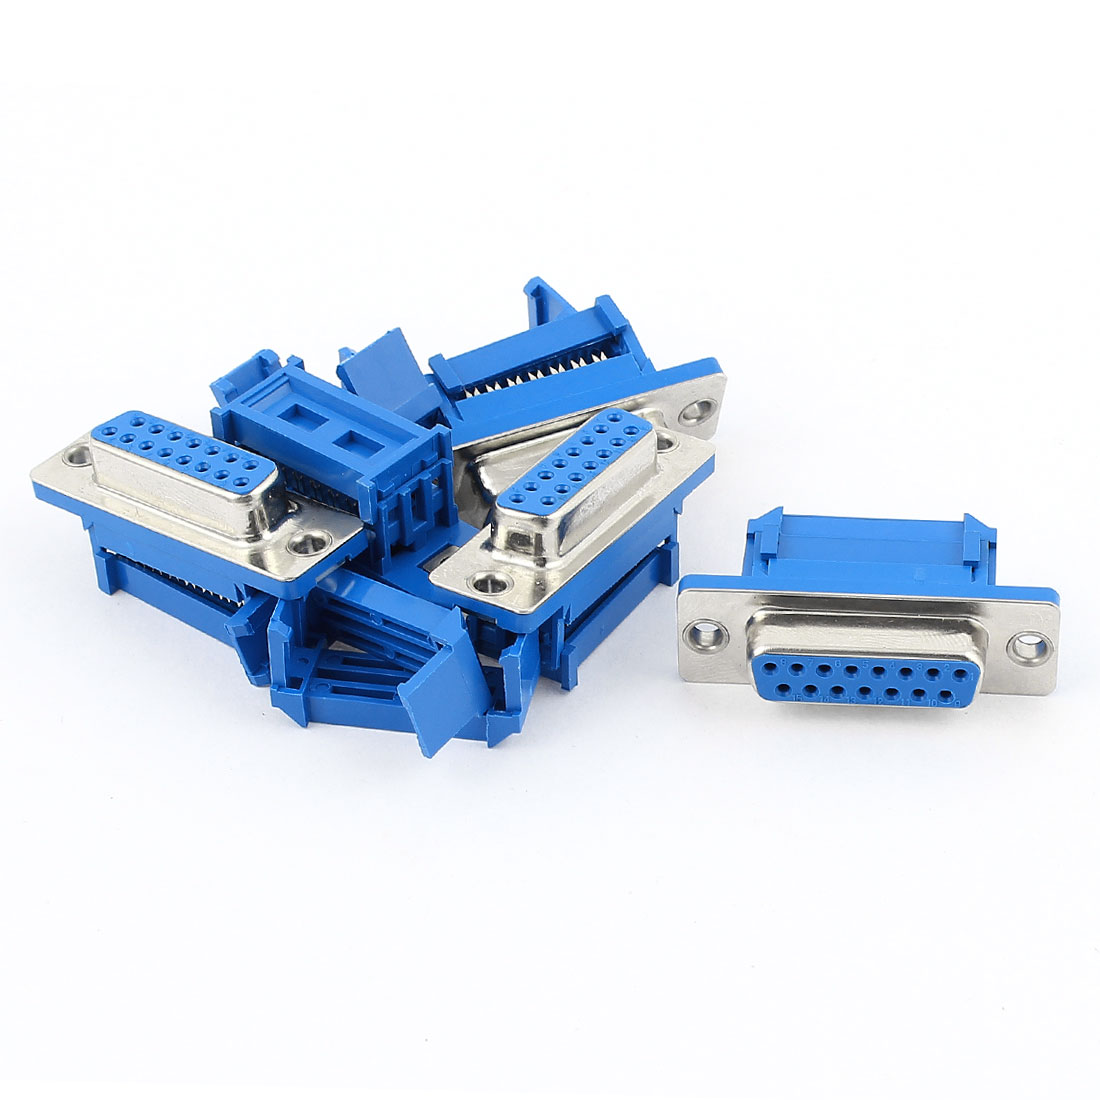 5pcs D-SUB DB15 15 Pin Female IDC Crimp Adapter Connector for Flat Ribbon Cable